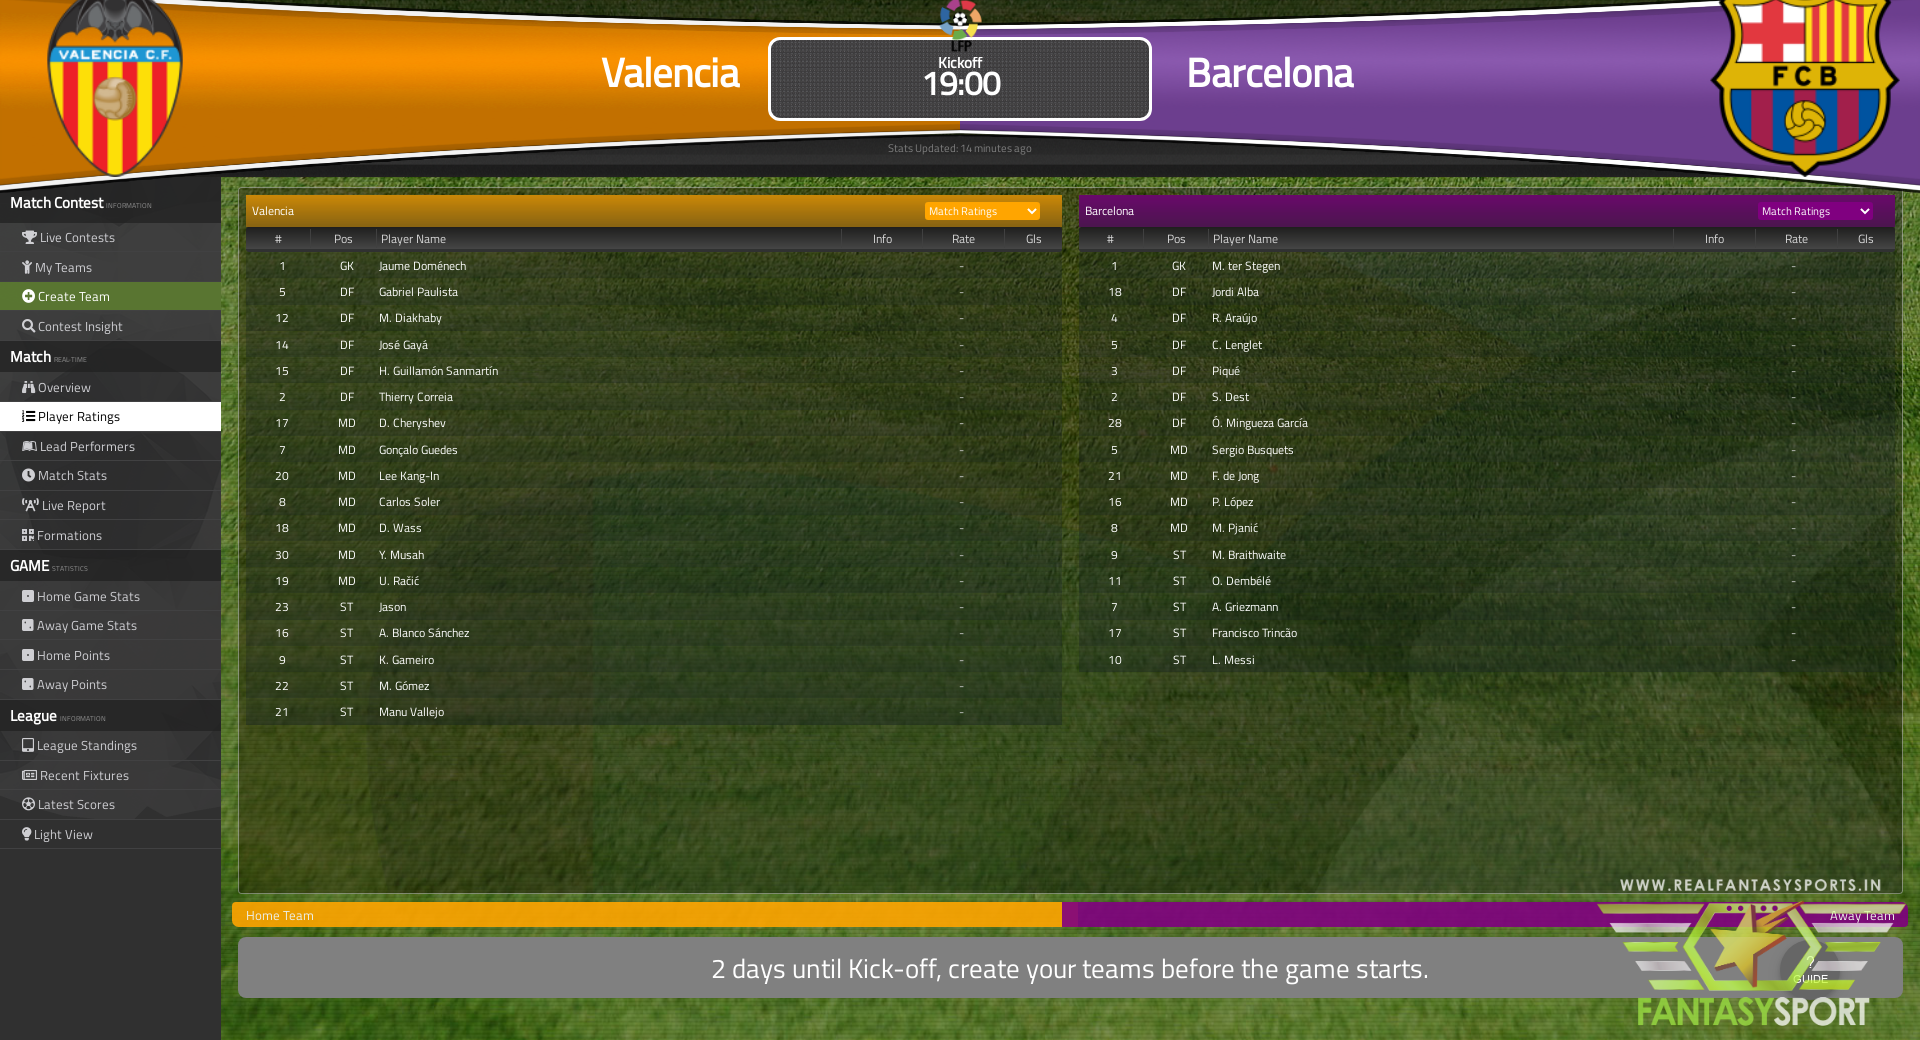 Fantasy Football Valencia Vs Barcelona 2nd May 2021